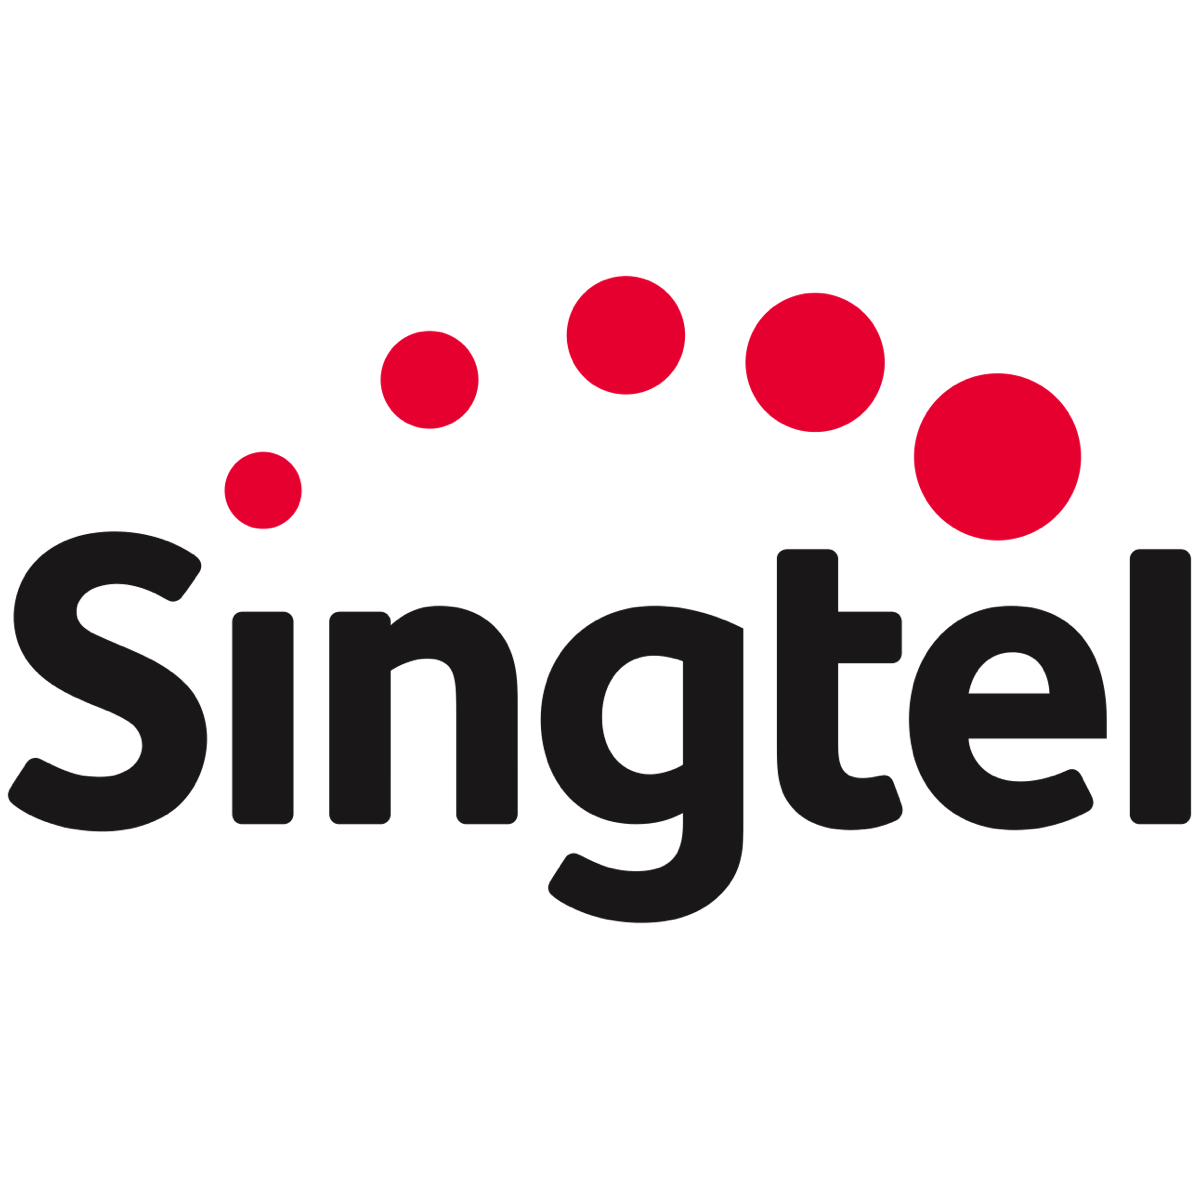 SingTel - RHB Invest 2017-12-19: The Better Of The Pack